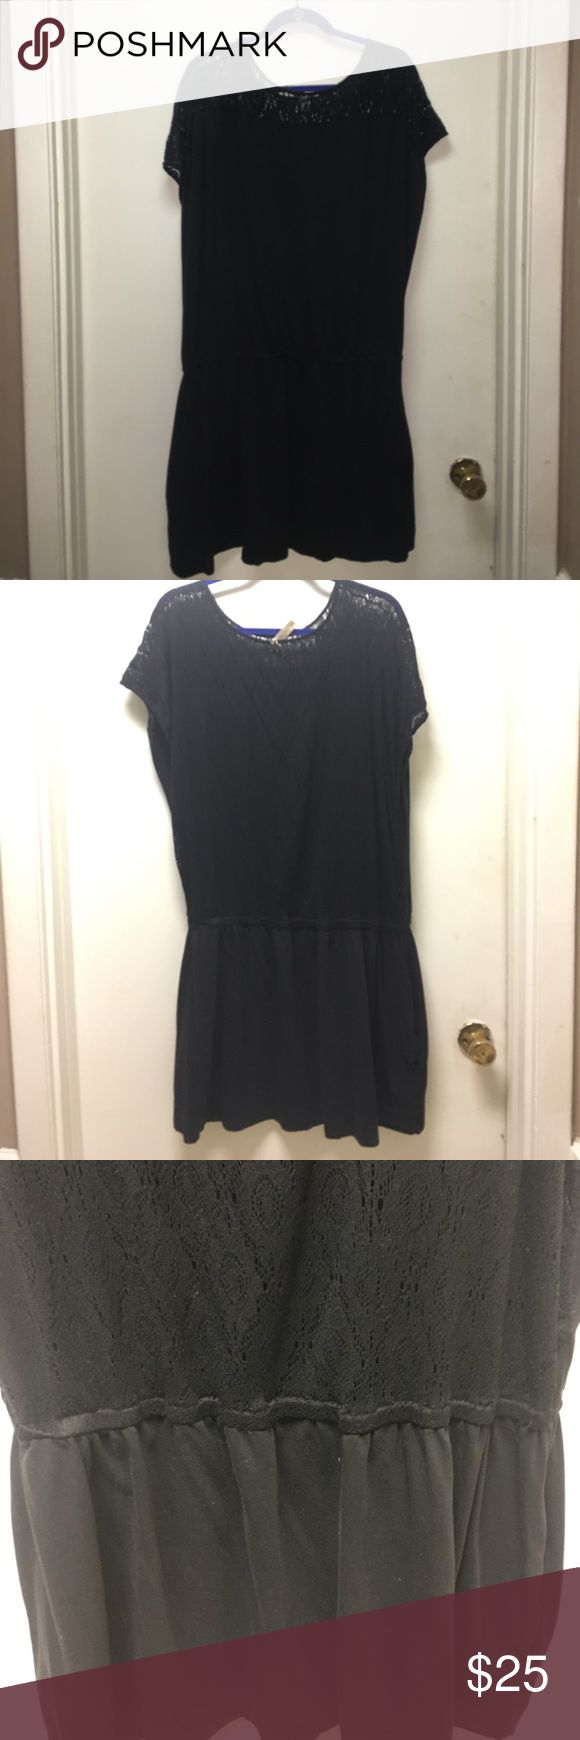 Lane Bryant Swuim Suit Cover Up Black Lane Bryant Swim Suit Cover Up. Back is Mesh like. Has a band. I got it big but normally wear an 18. Super comfy, used but has lots of life left. Lane Bryant Swim Coverups